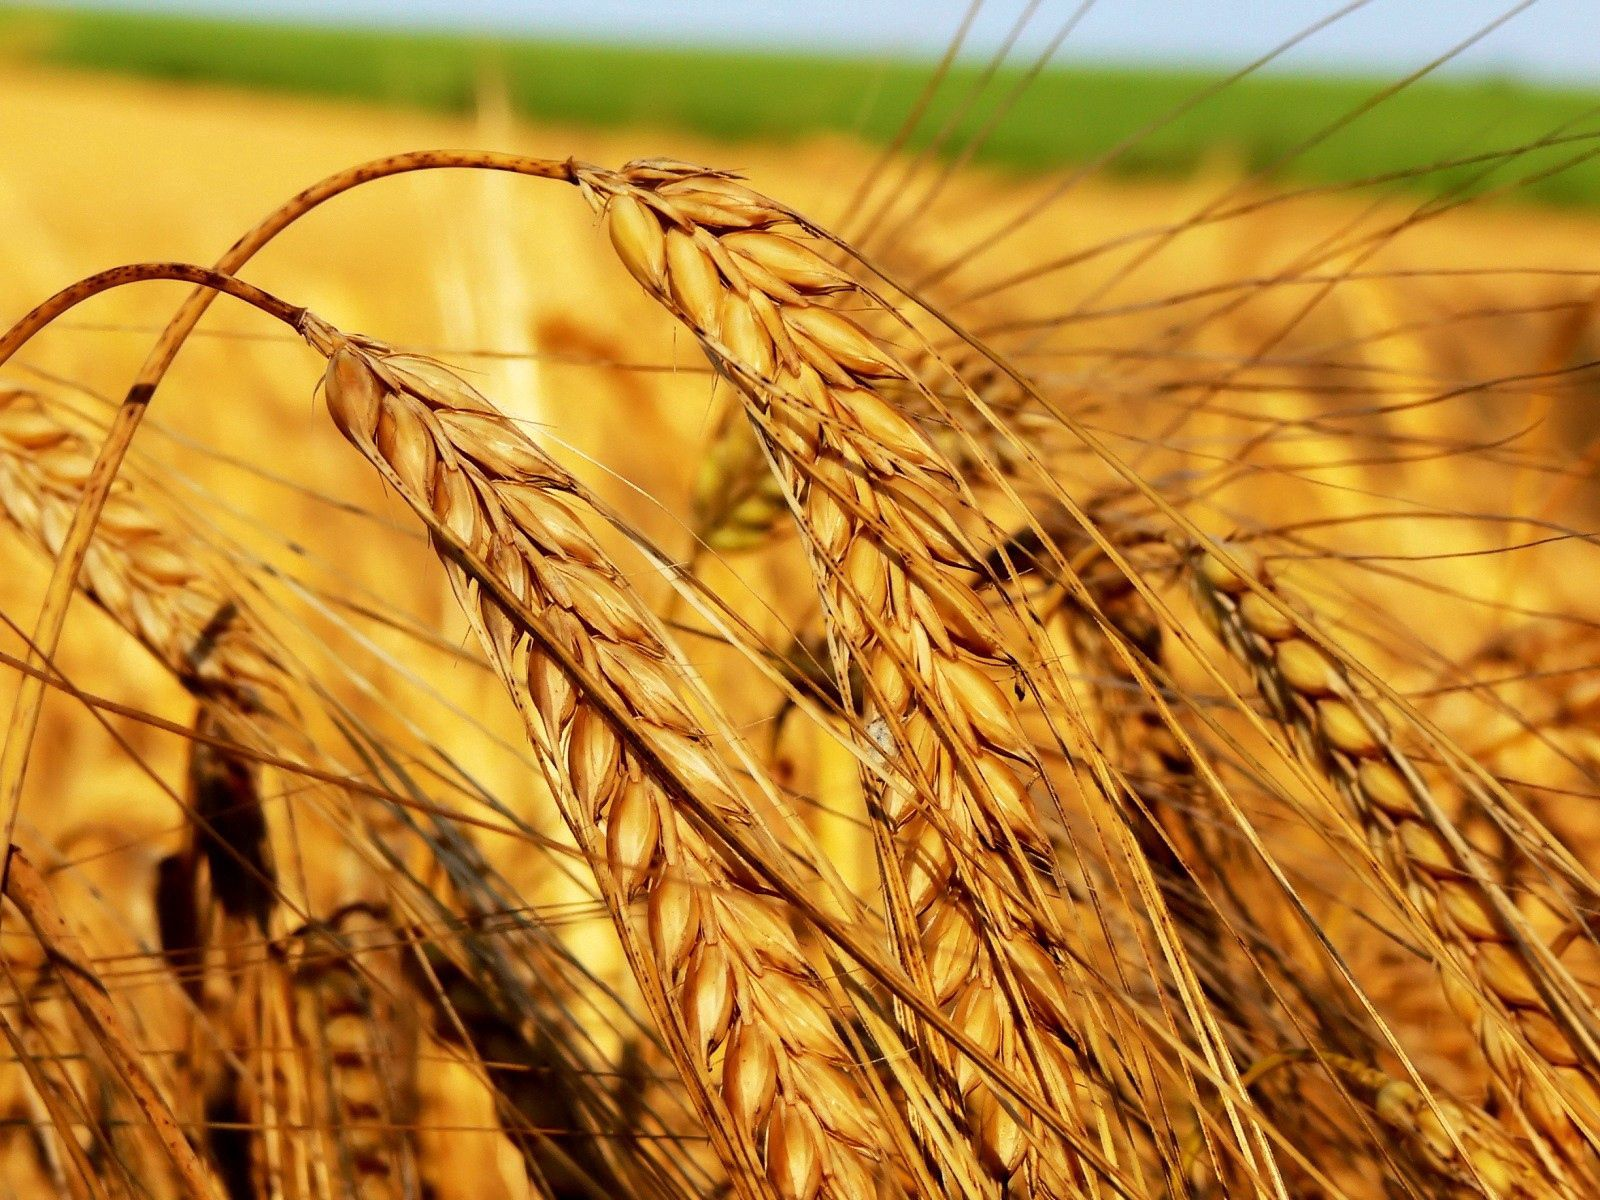 67165 Screensavers and Wallpapers Agriculture for phone. Download Nature, Field, Ears, Spikes, Harvest, Cereals, Agriculture, Crops pictures for free